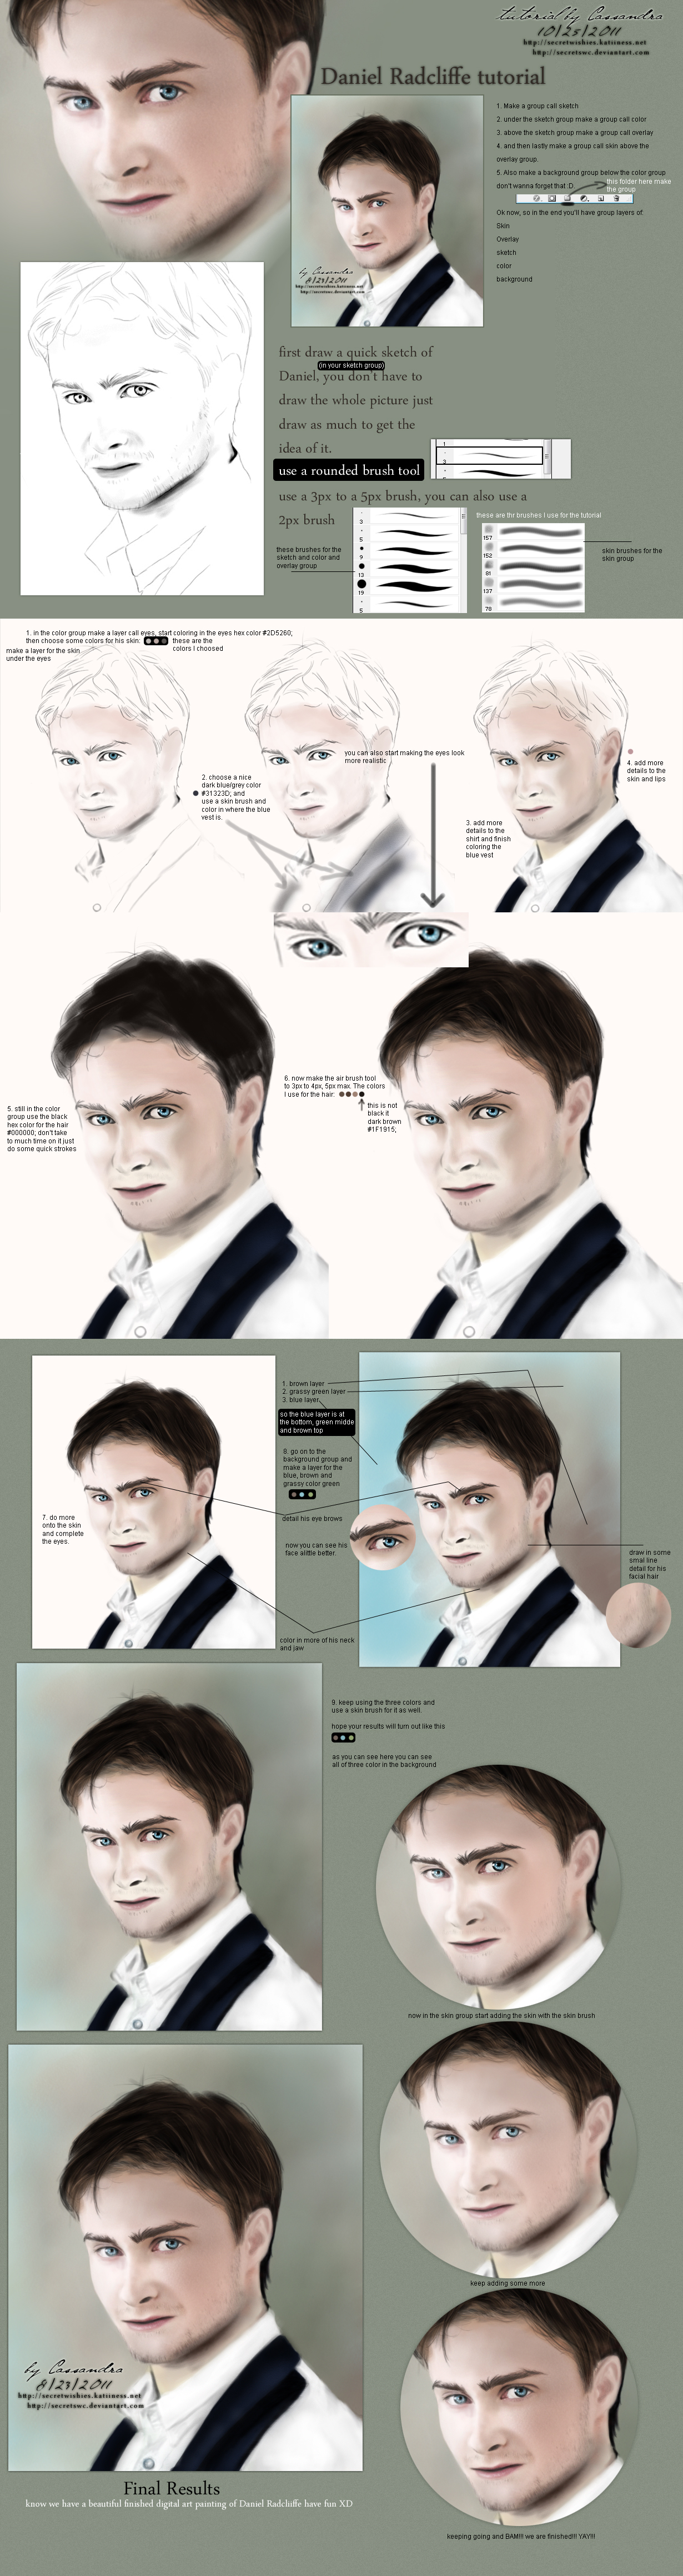 Daniel Radcliffe Tutorial by secretSWC